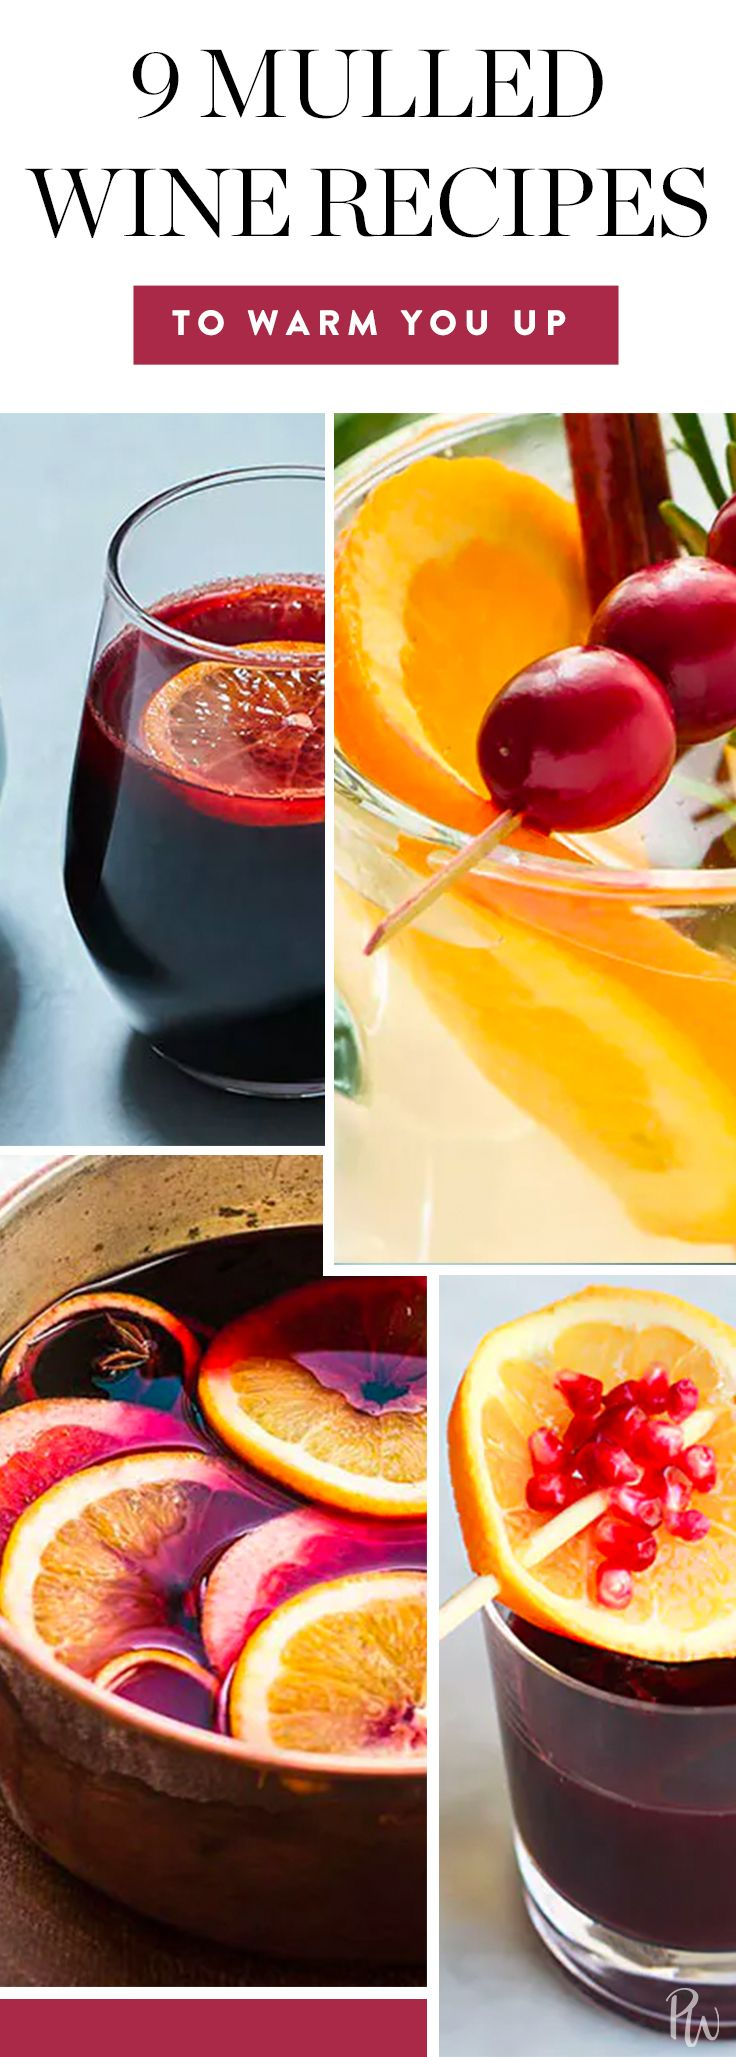 801 best seasonal sips images on pinterest cocktail recipes 9 mulled wine recipes to warm you up on chilly nights forumfinder Choice Image